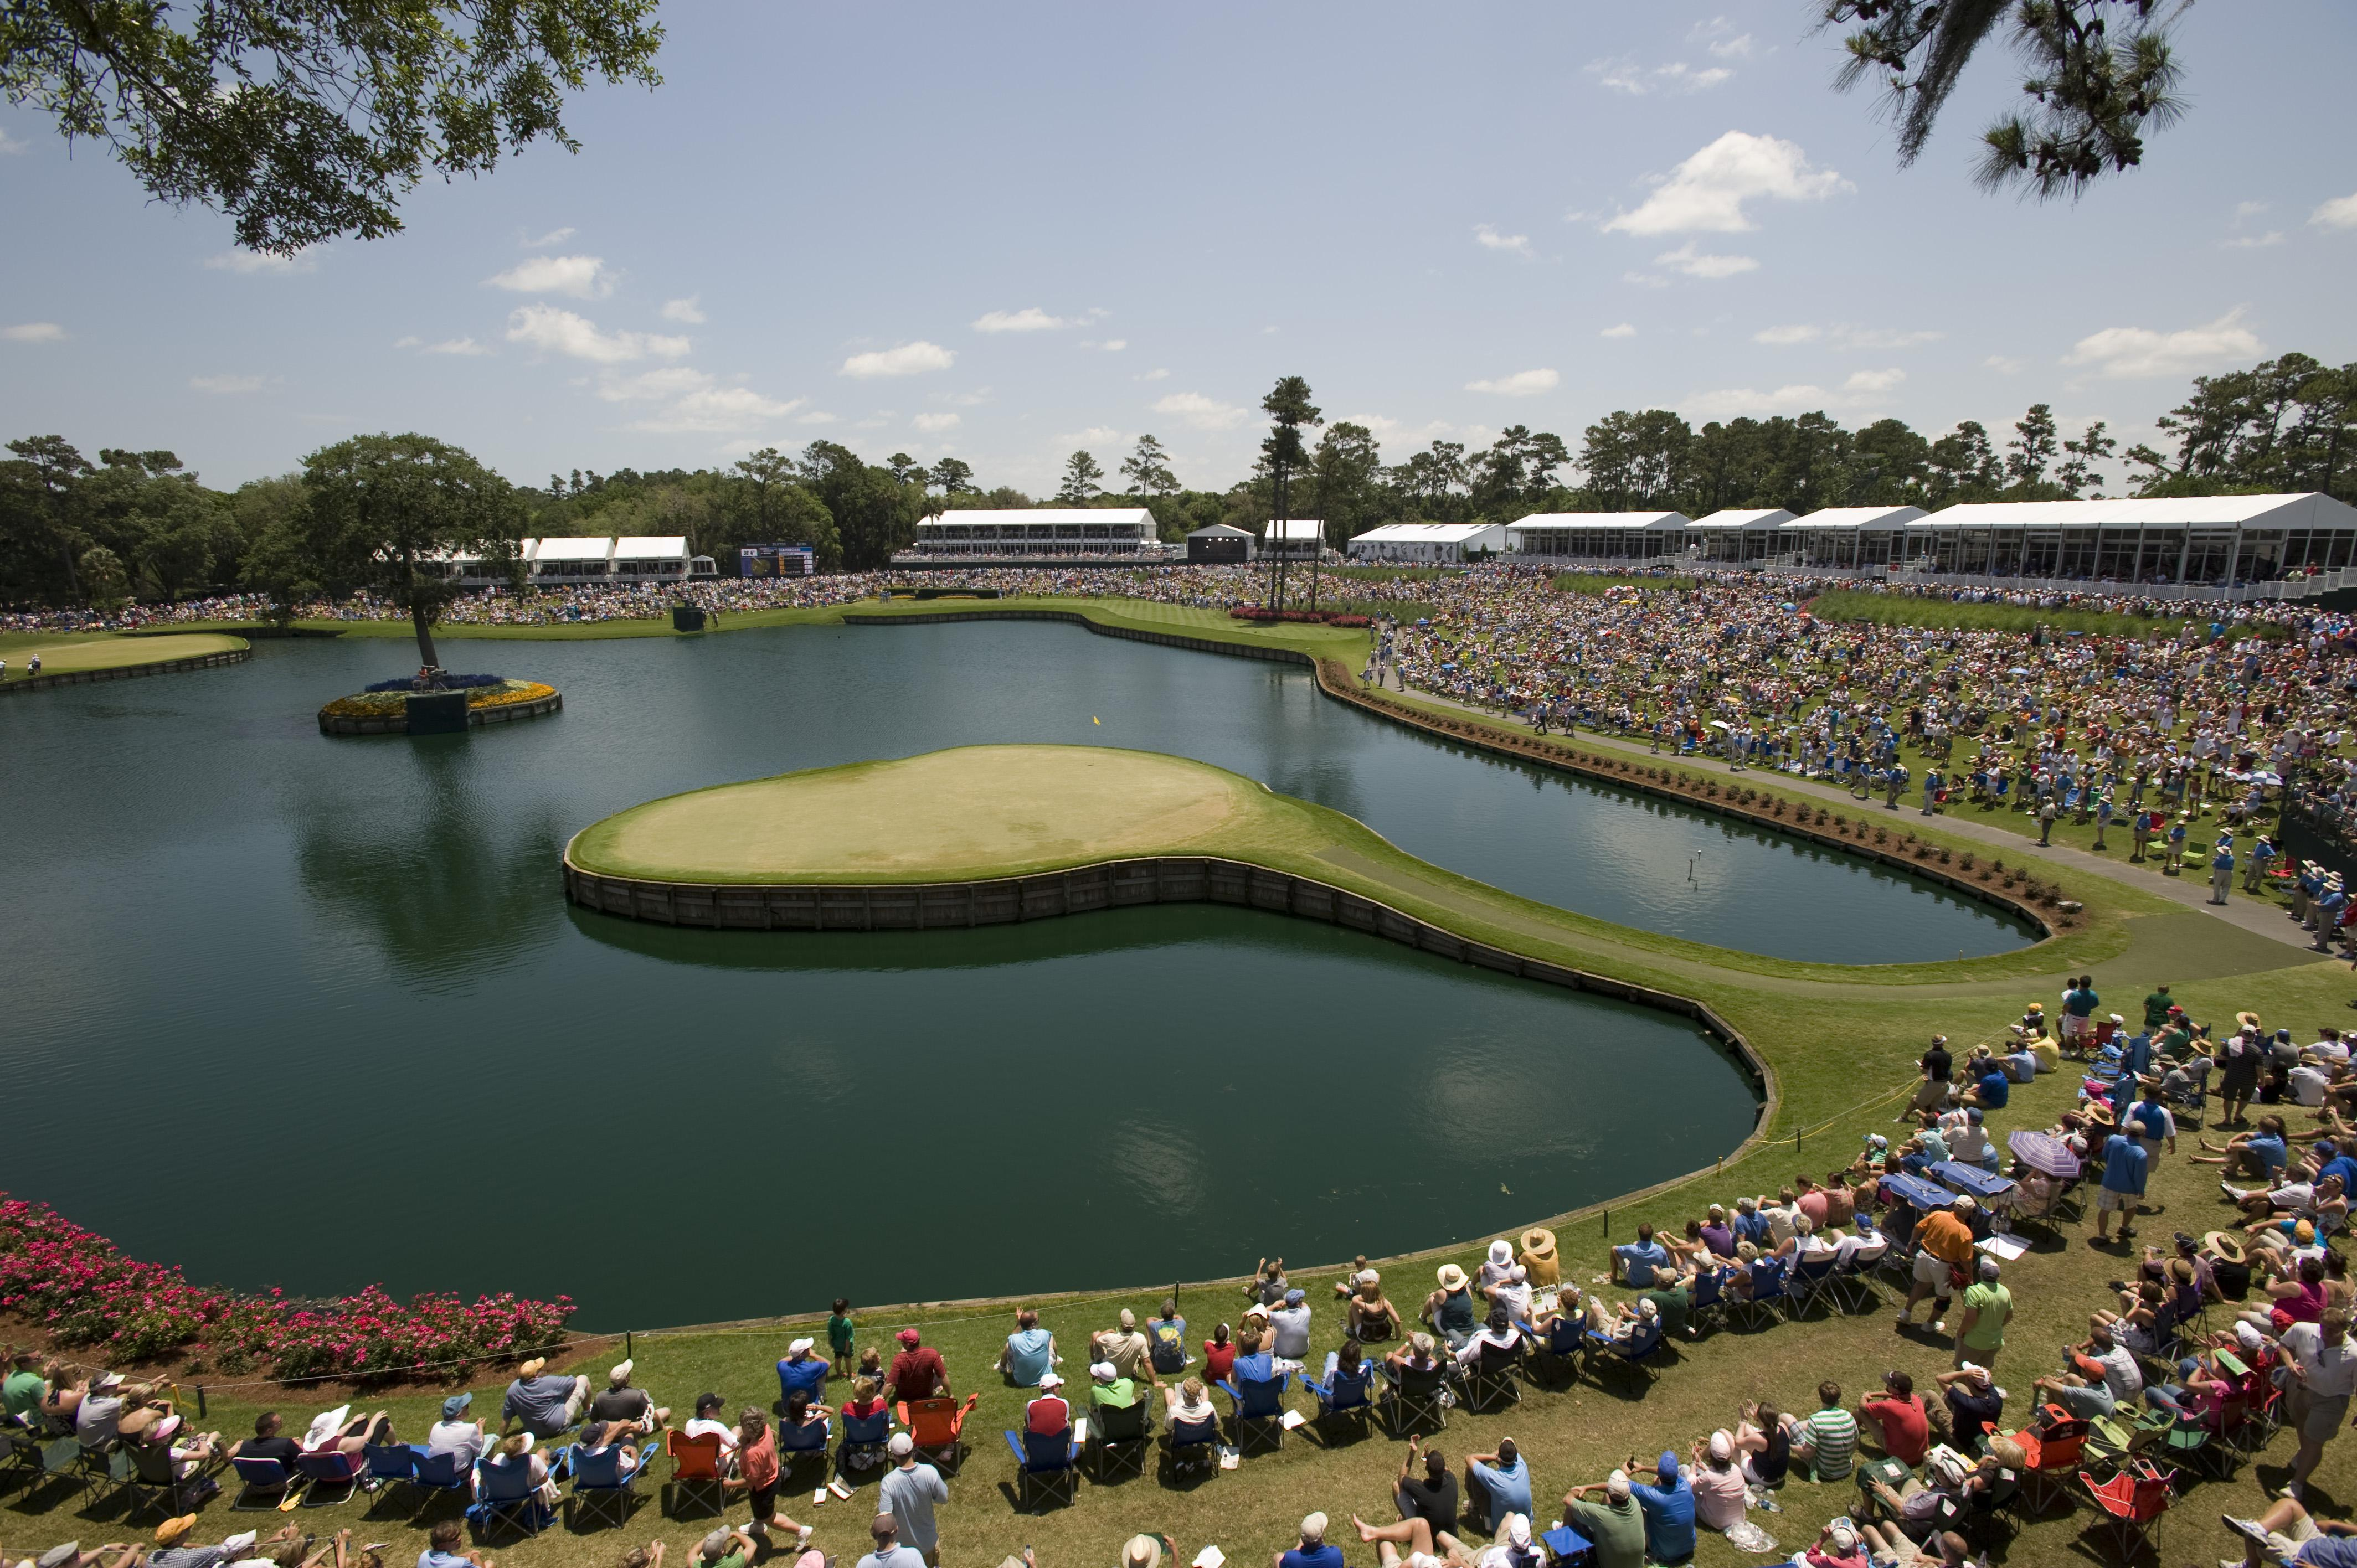 The 17th hole at Sawgrass is one of the trickiest as it is surrounded by water